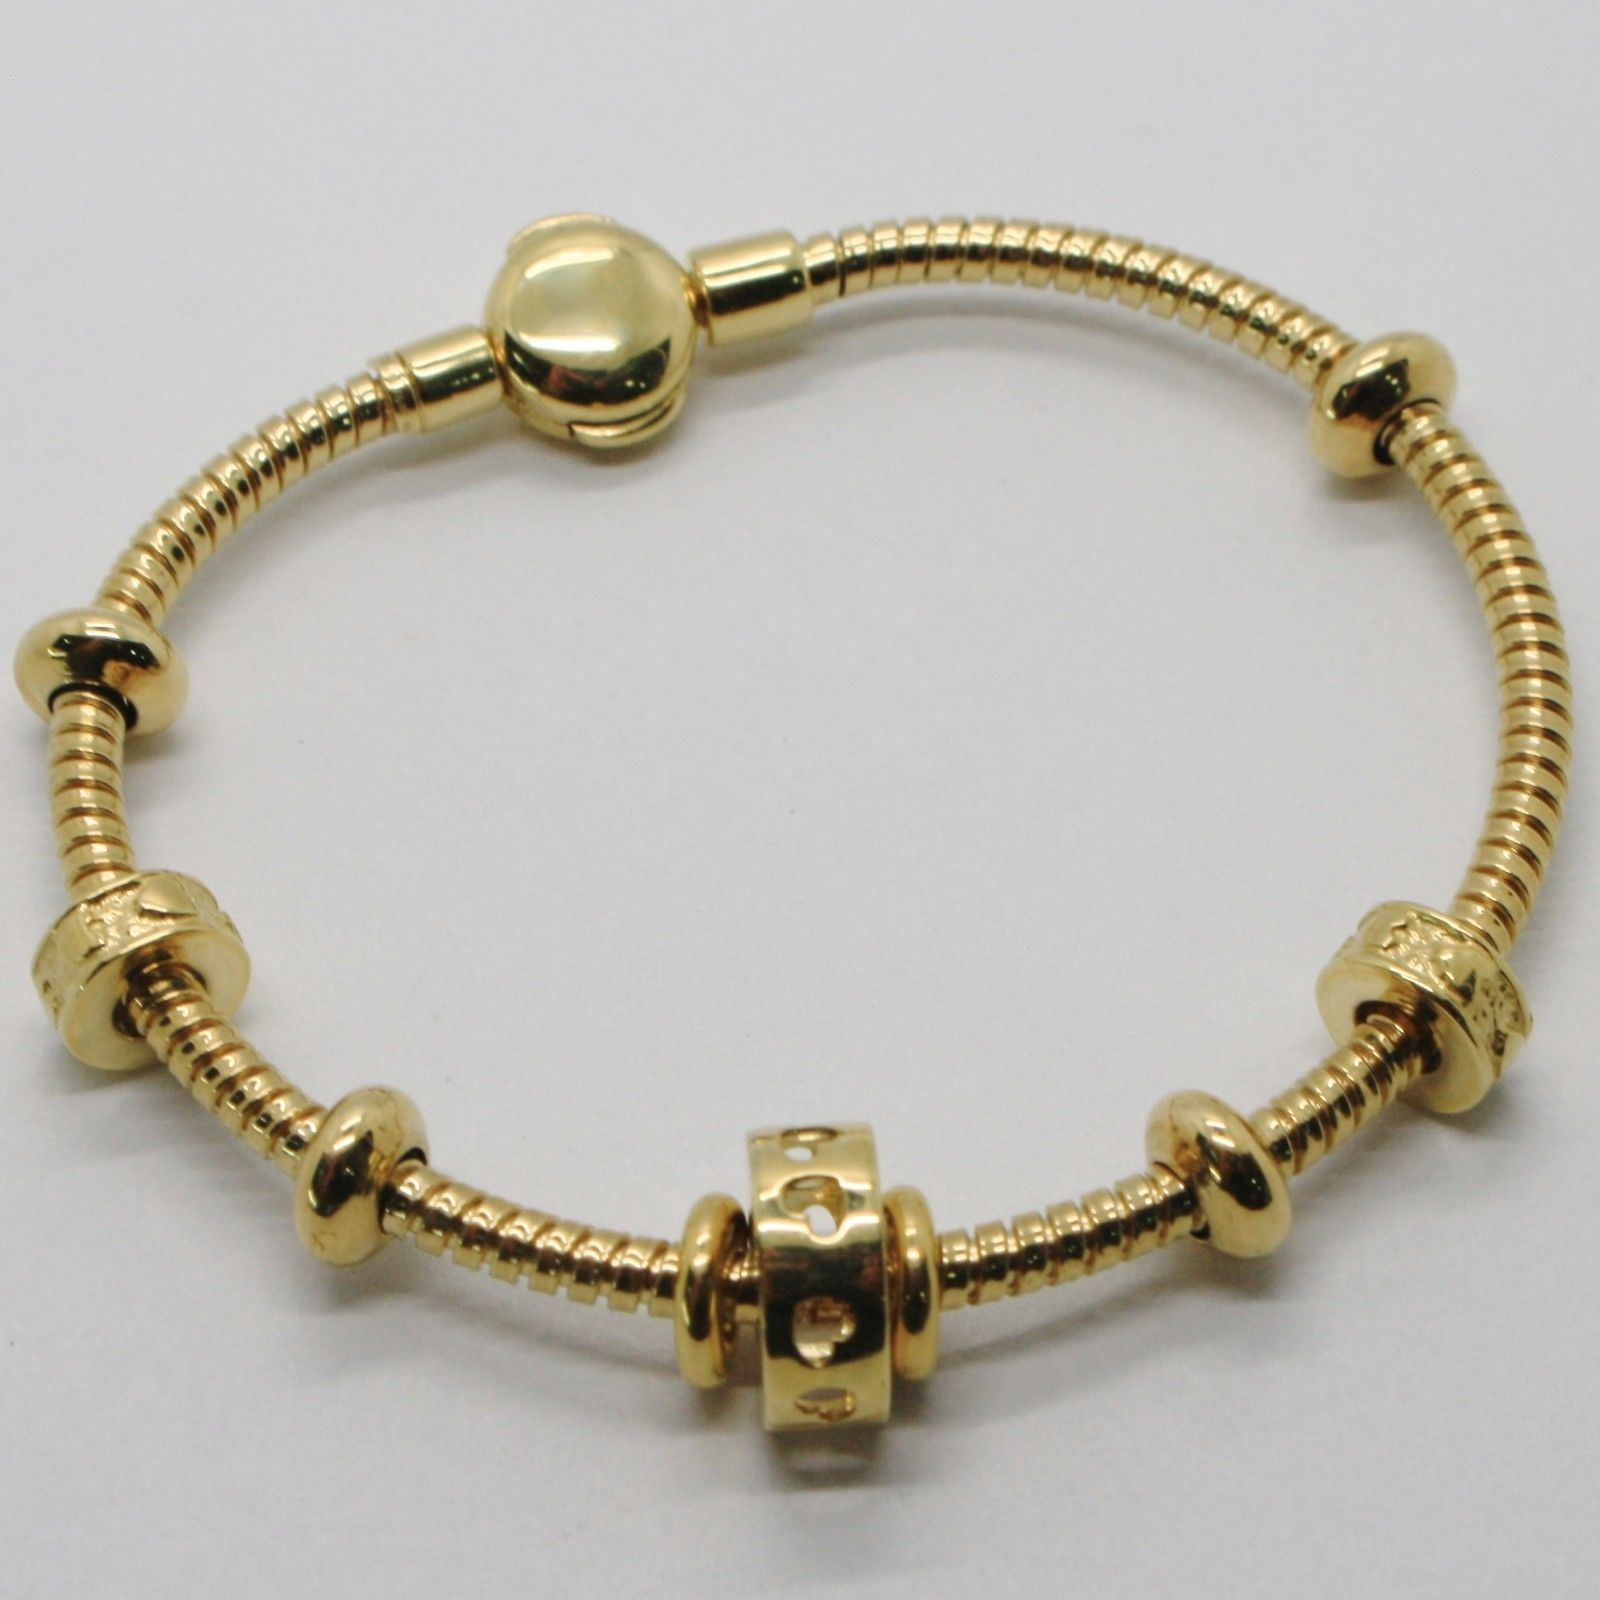 BRACELET EN OR JAUNE 18K 750 SEMI RIGIDE POLI AVEC INSERTS MADE IN ITALY